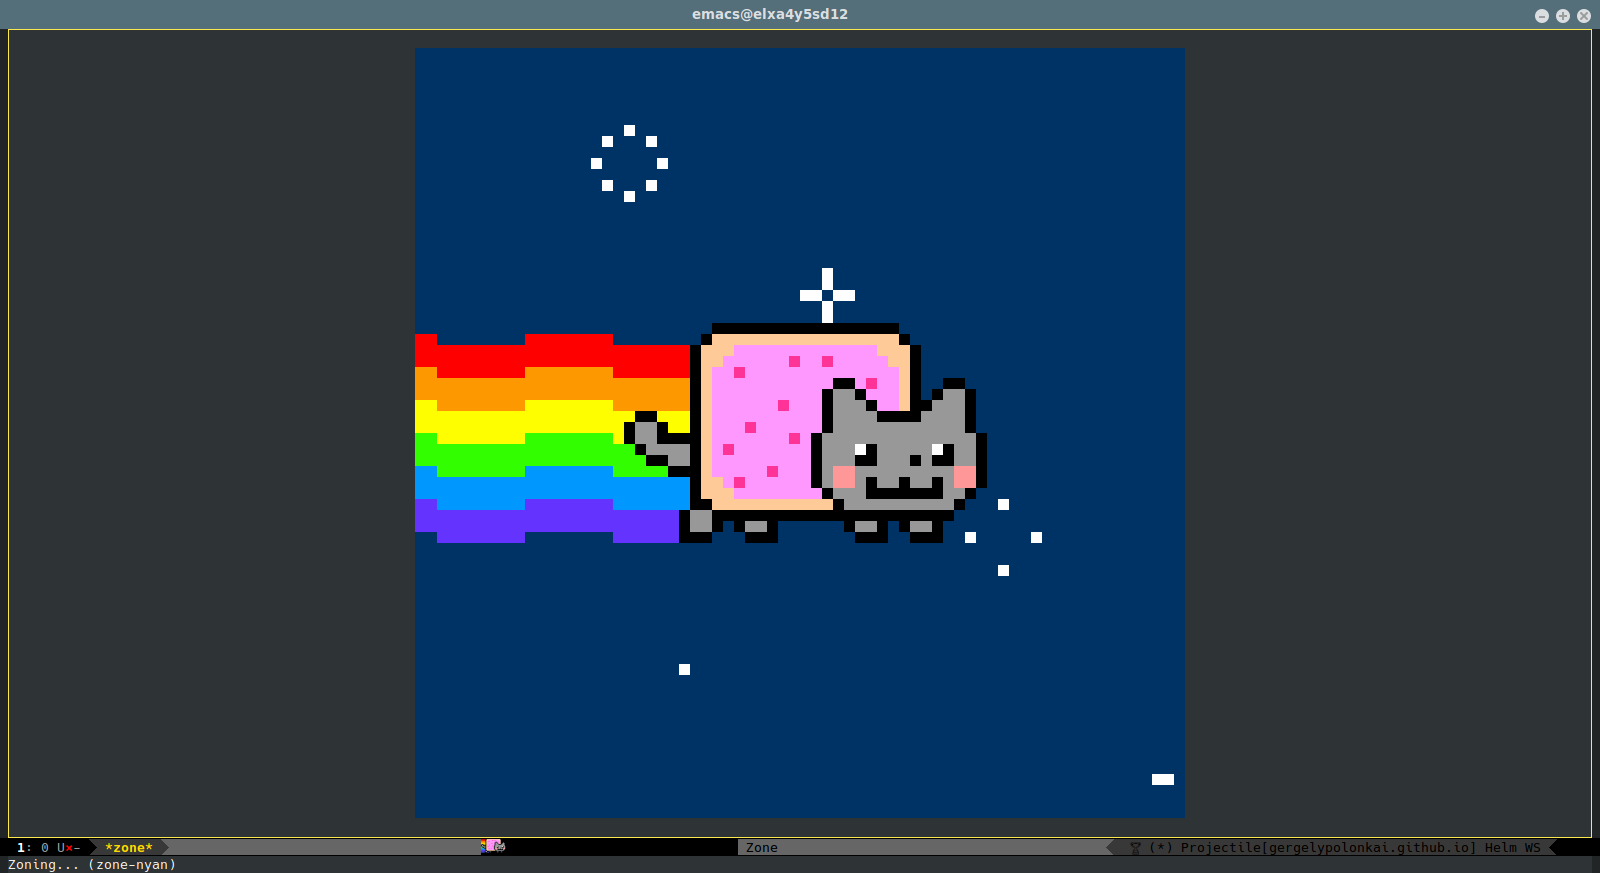 a text-based animation with Nyan cat